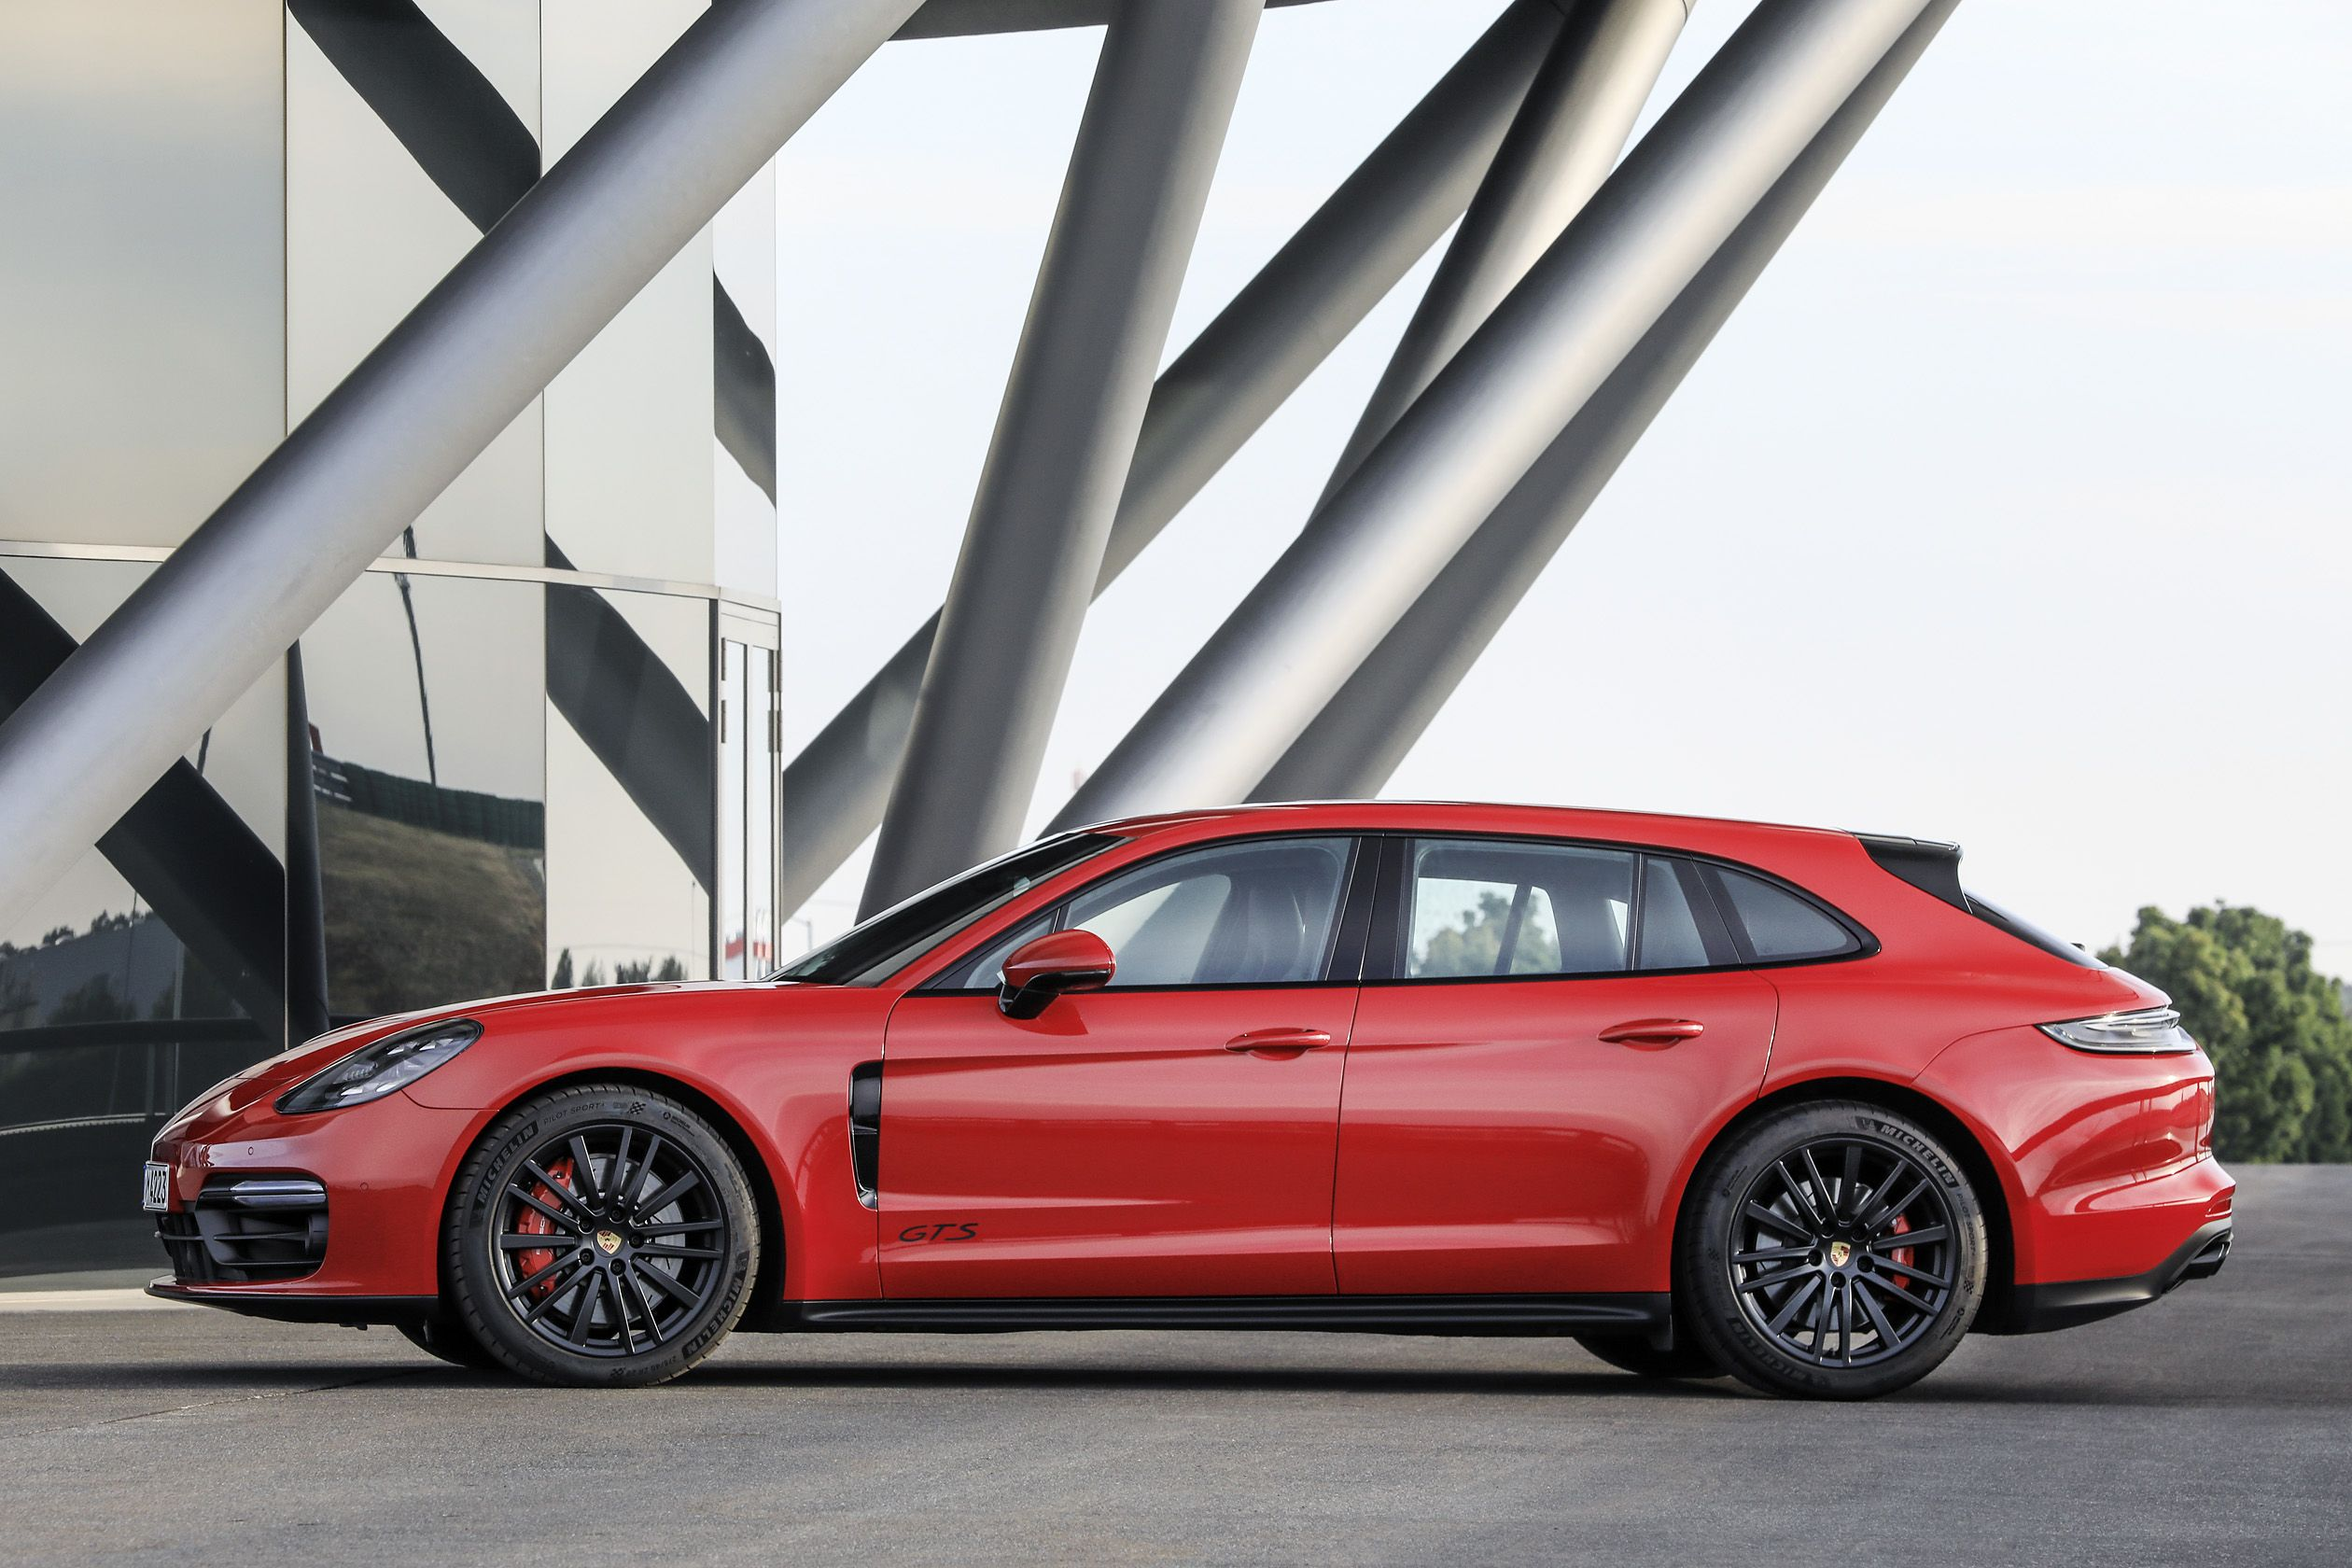 Gallery Meet The 2021 Porsche Panamera A sports car without compromise for everyday use. gallery meet the 2021 porsche panamera